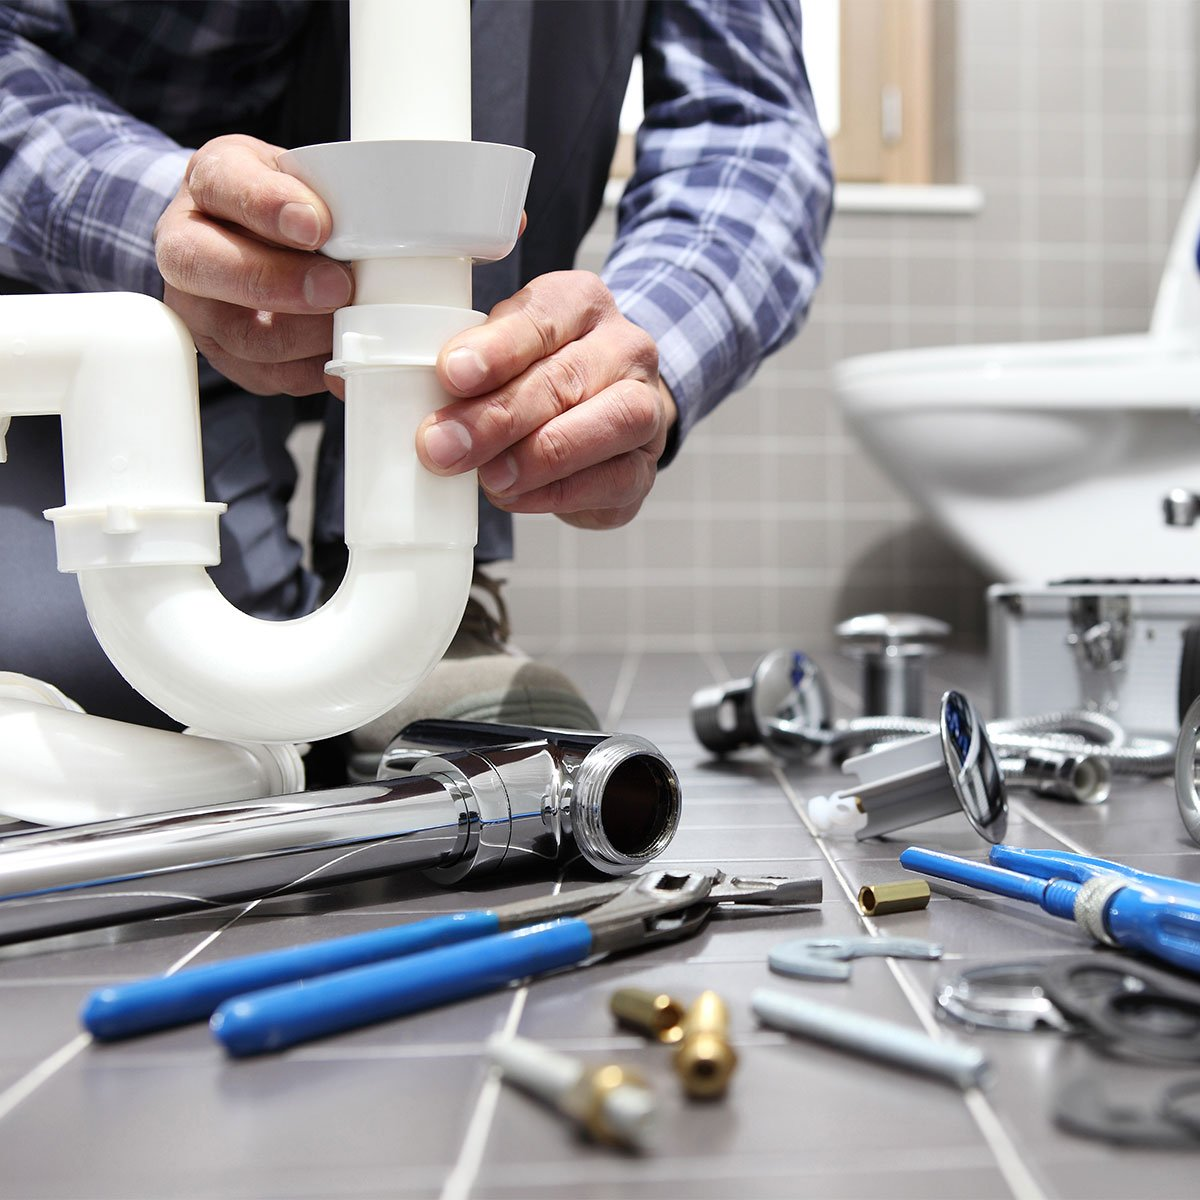 man in bathroom constructing pipes with several tools